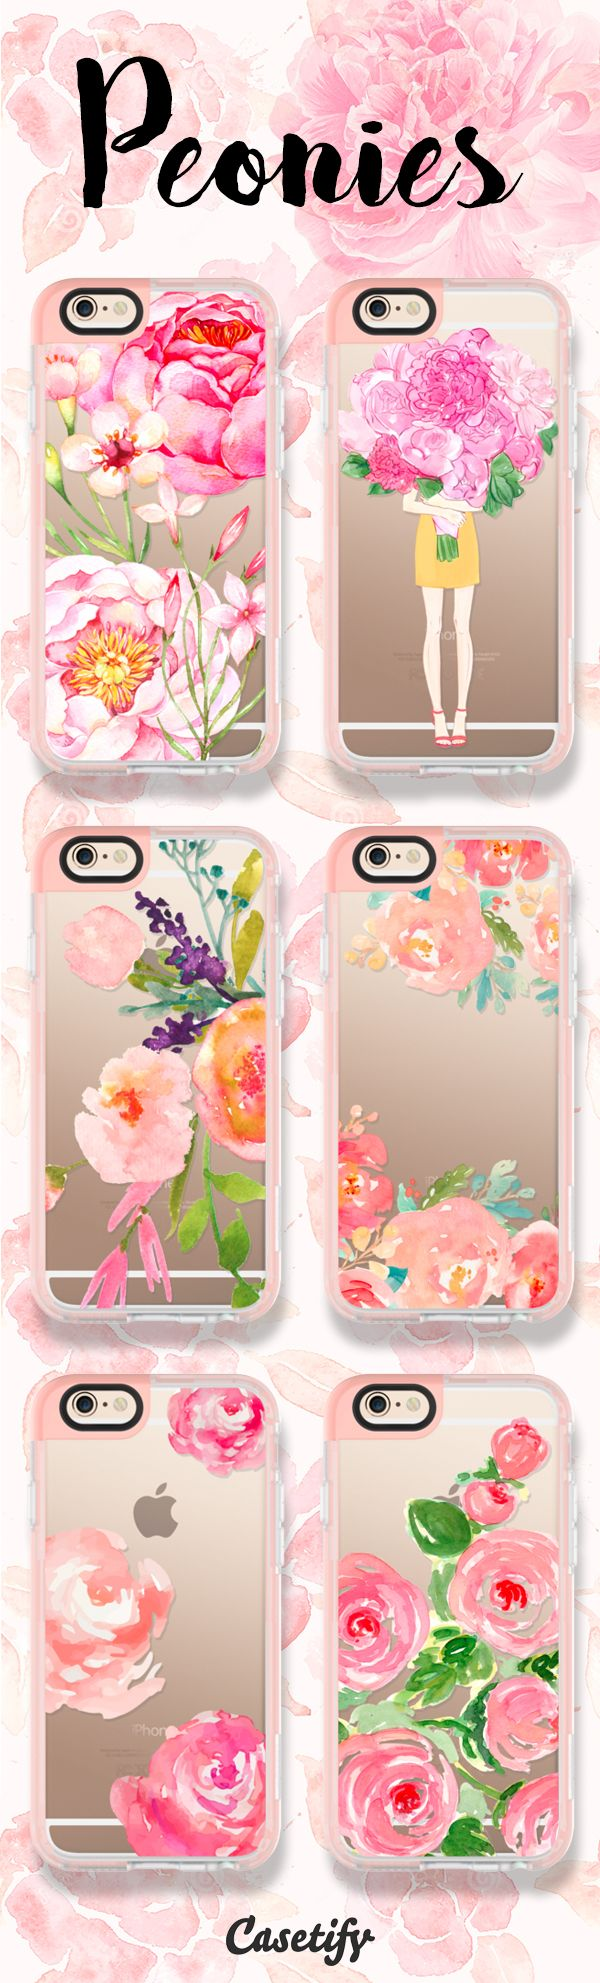 For all the peonies lovers! Tap this link to shop the cases: https://www.casetify.com/artworks/yxwQhqcbI7     @casetify